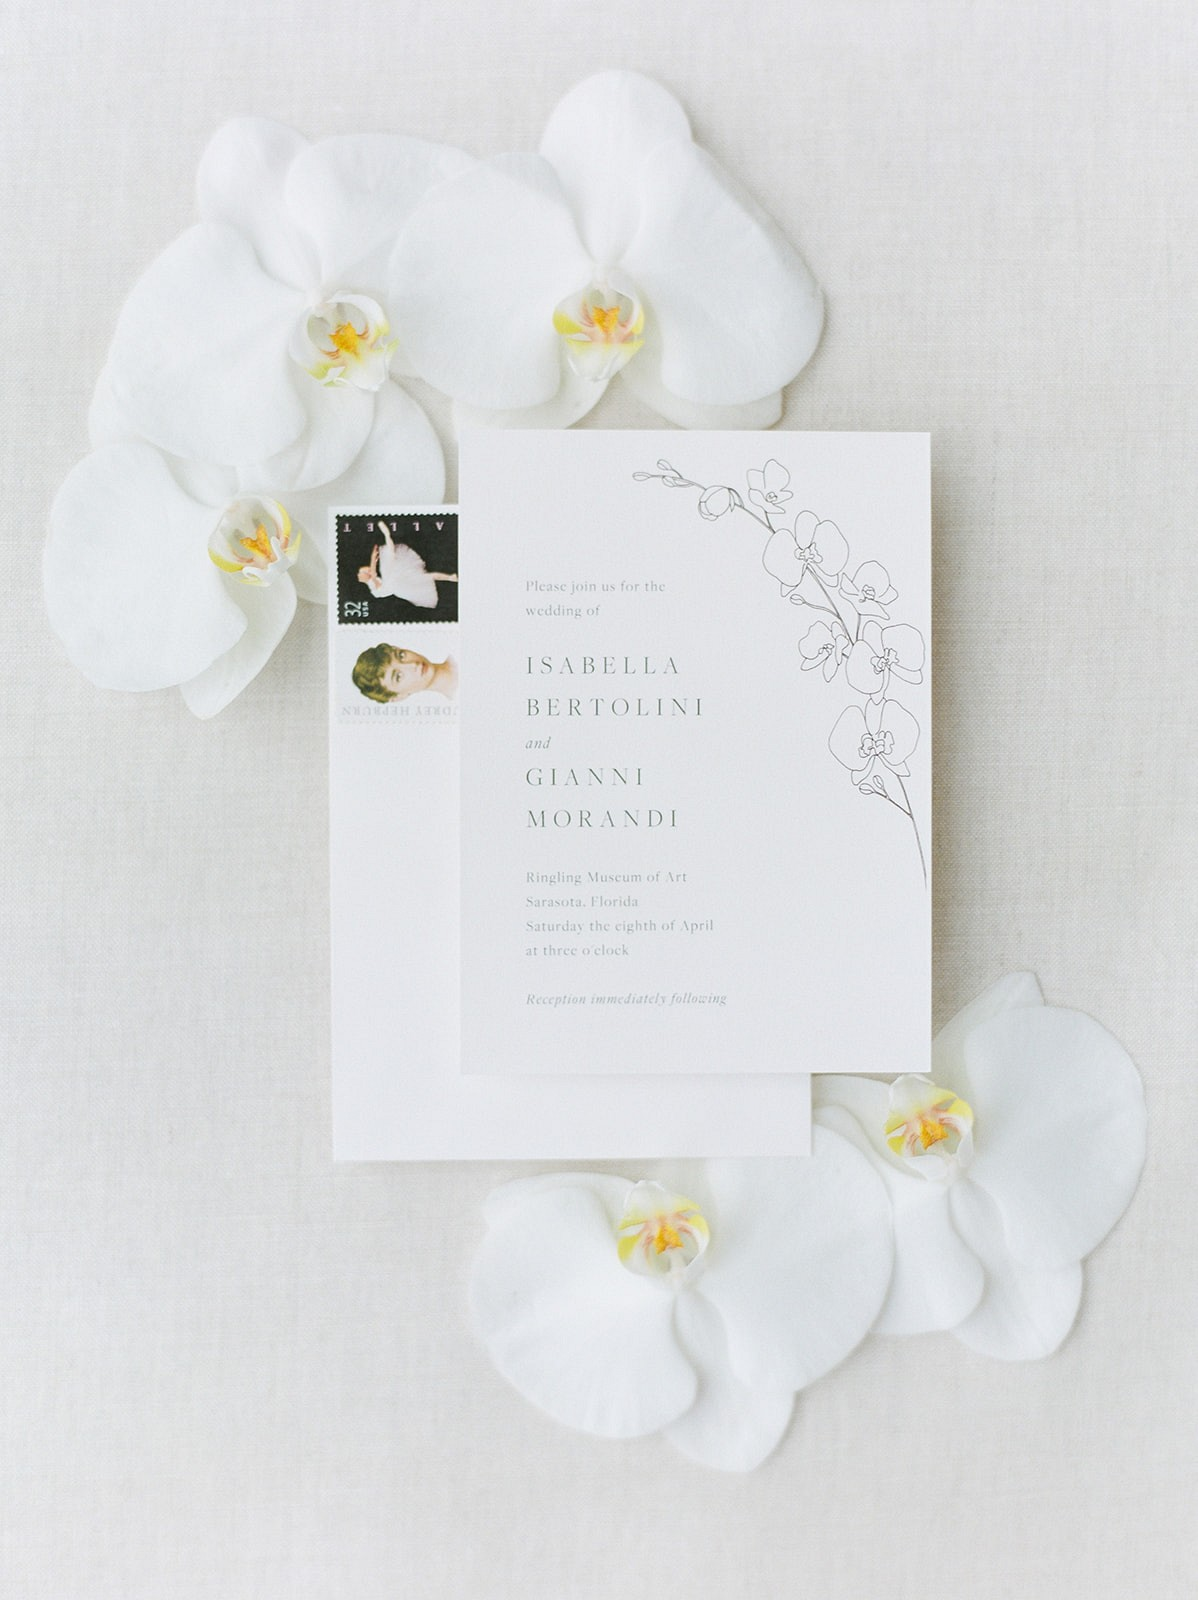 Formal yet Intimate Elopement for Two at Ringling Museum of Art